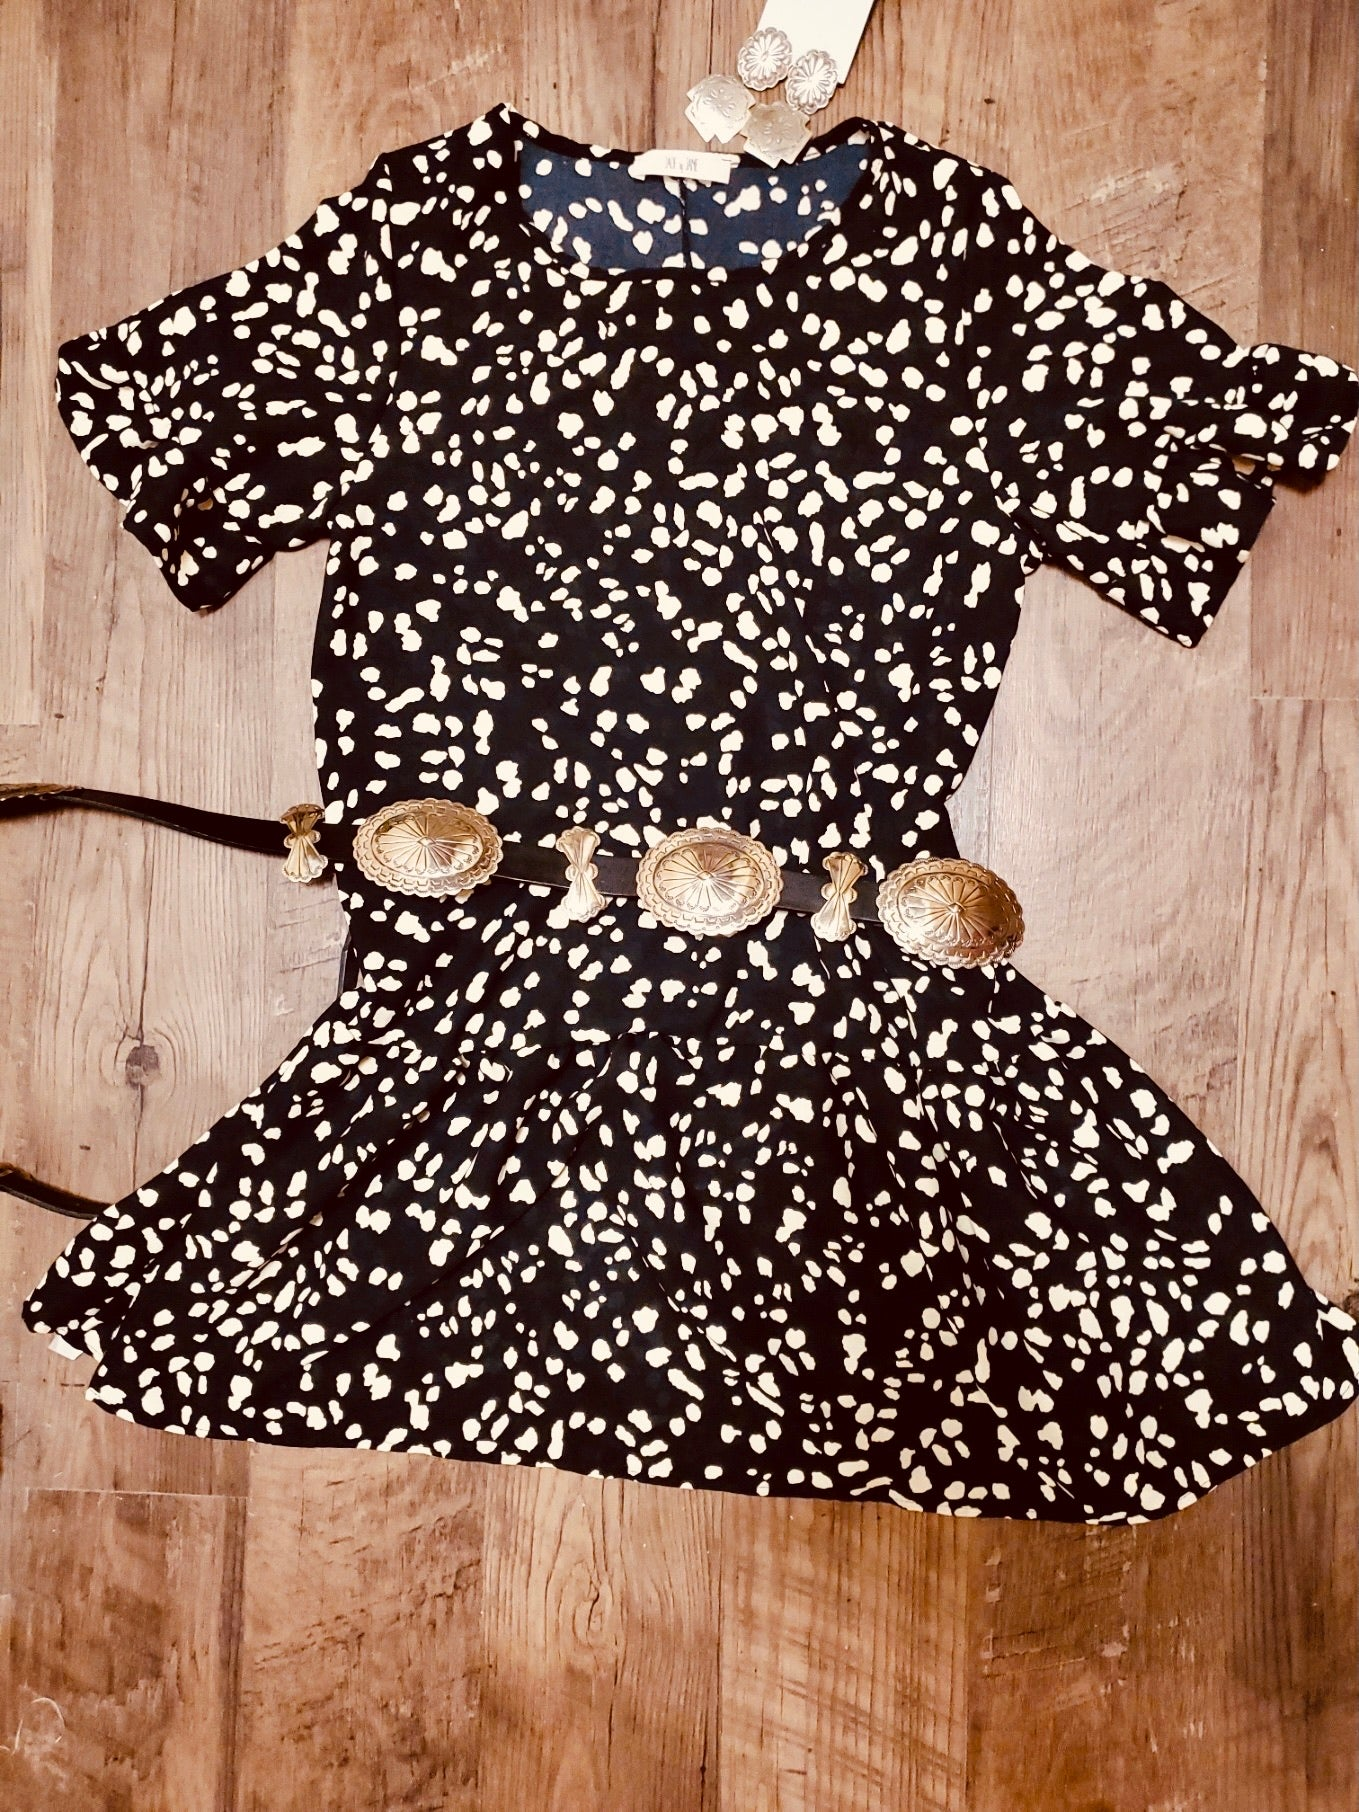 Black Cheetah Print Dress